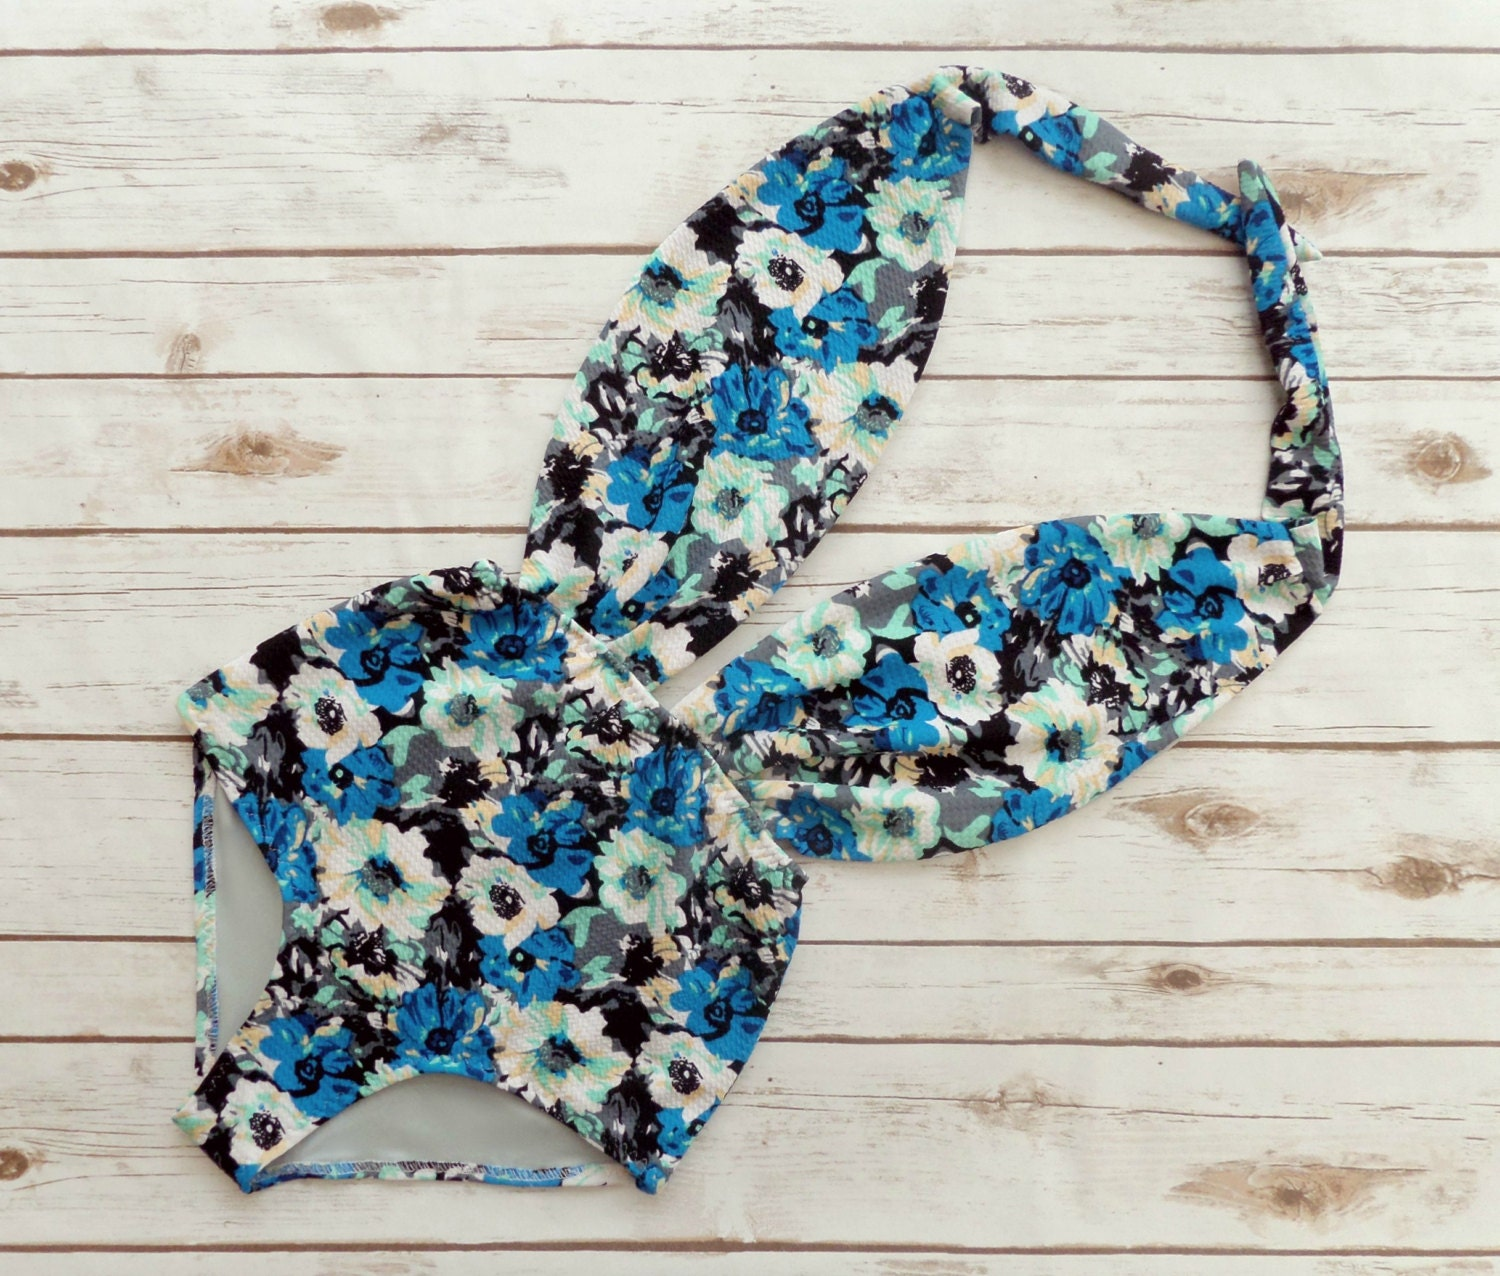 Swimsuit High Waisted Vintage Style One Piece Retro Pinup Maillot  Blue Mint Black And White Floral Print Backless Bathing Suit Swimwear